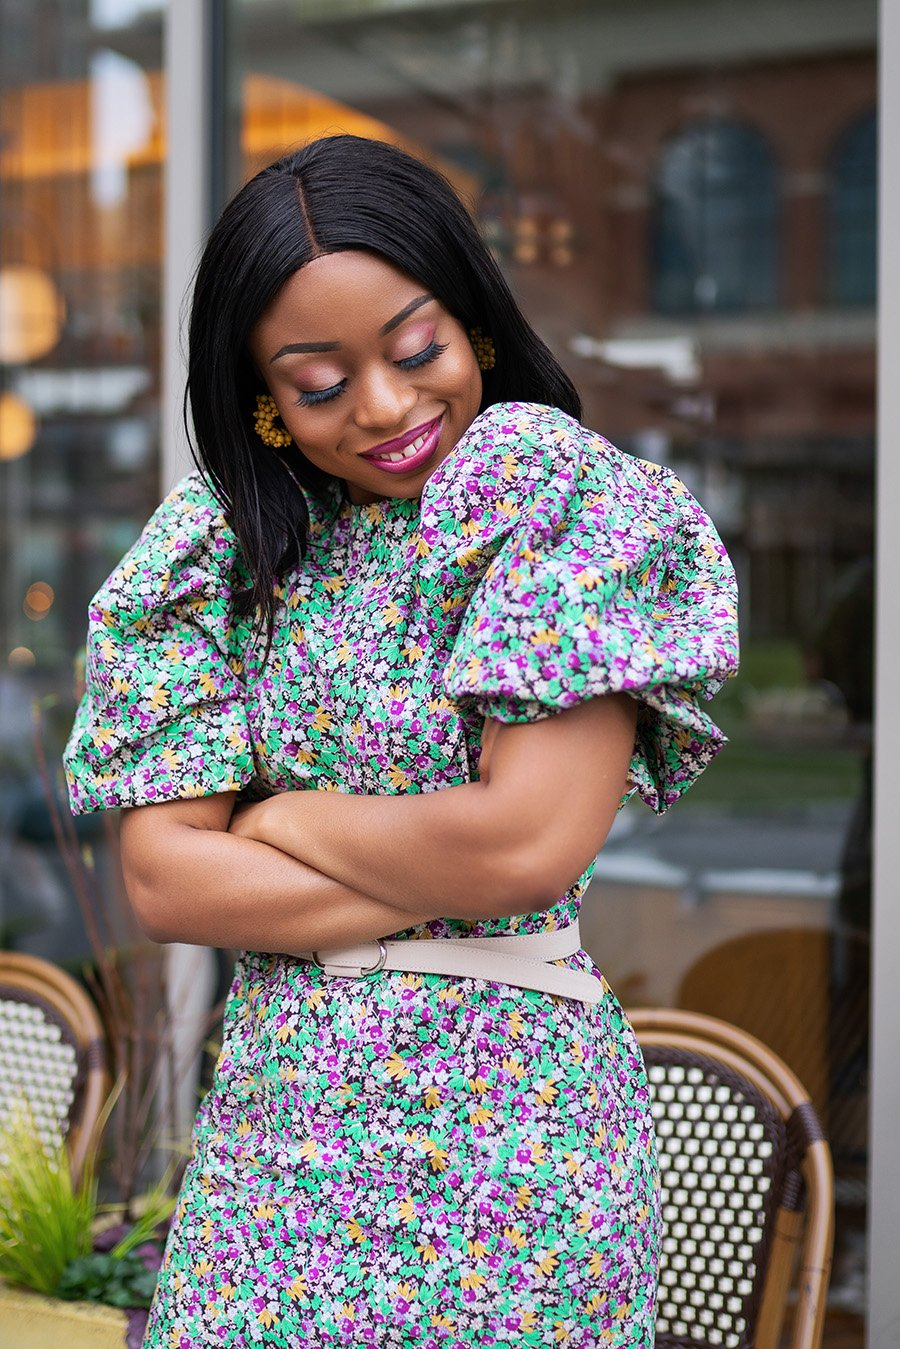 stella-adewunmi-of-jadore-fashion-blog-share-what-to-wear-this-easter-and-spring-puffy-sleeve-dress